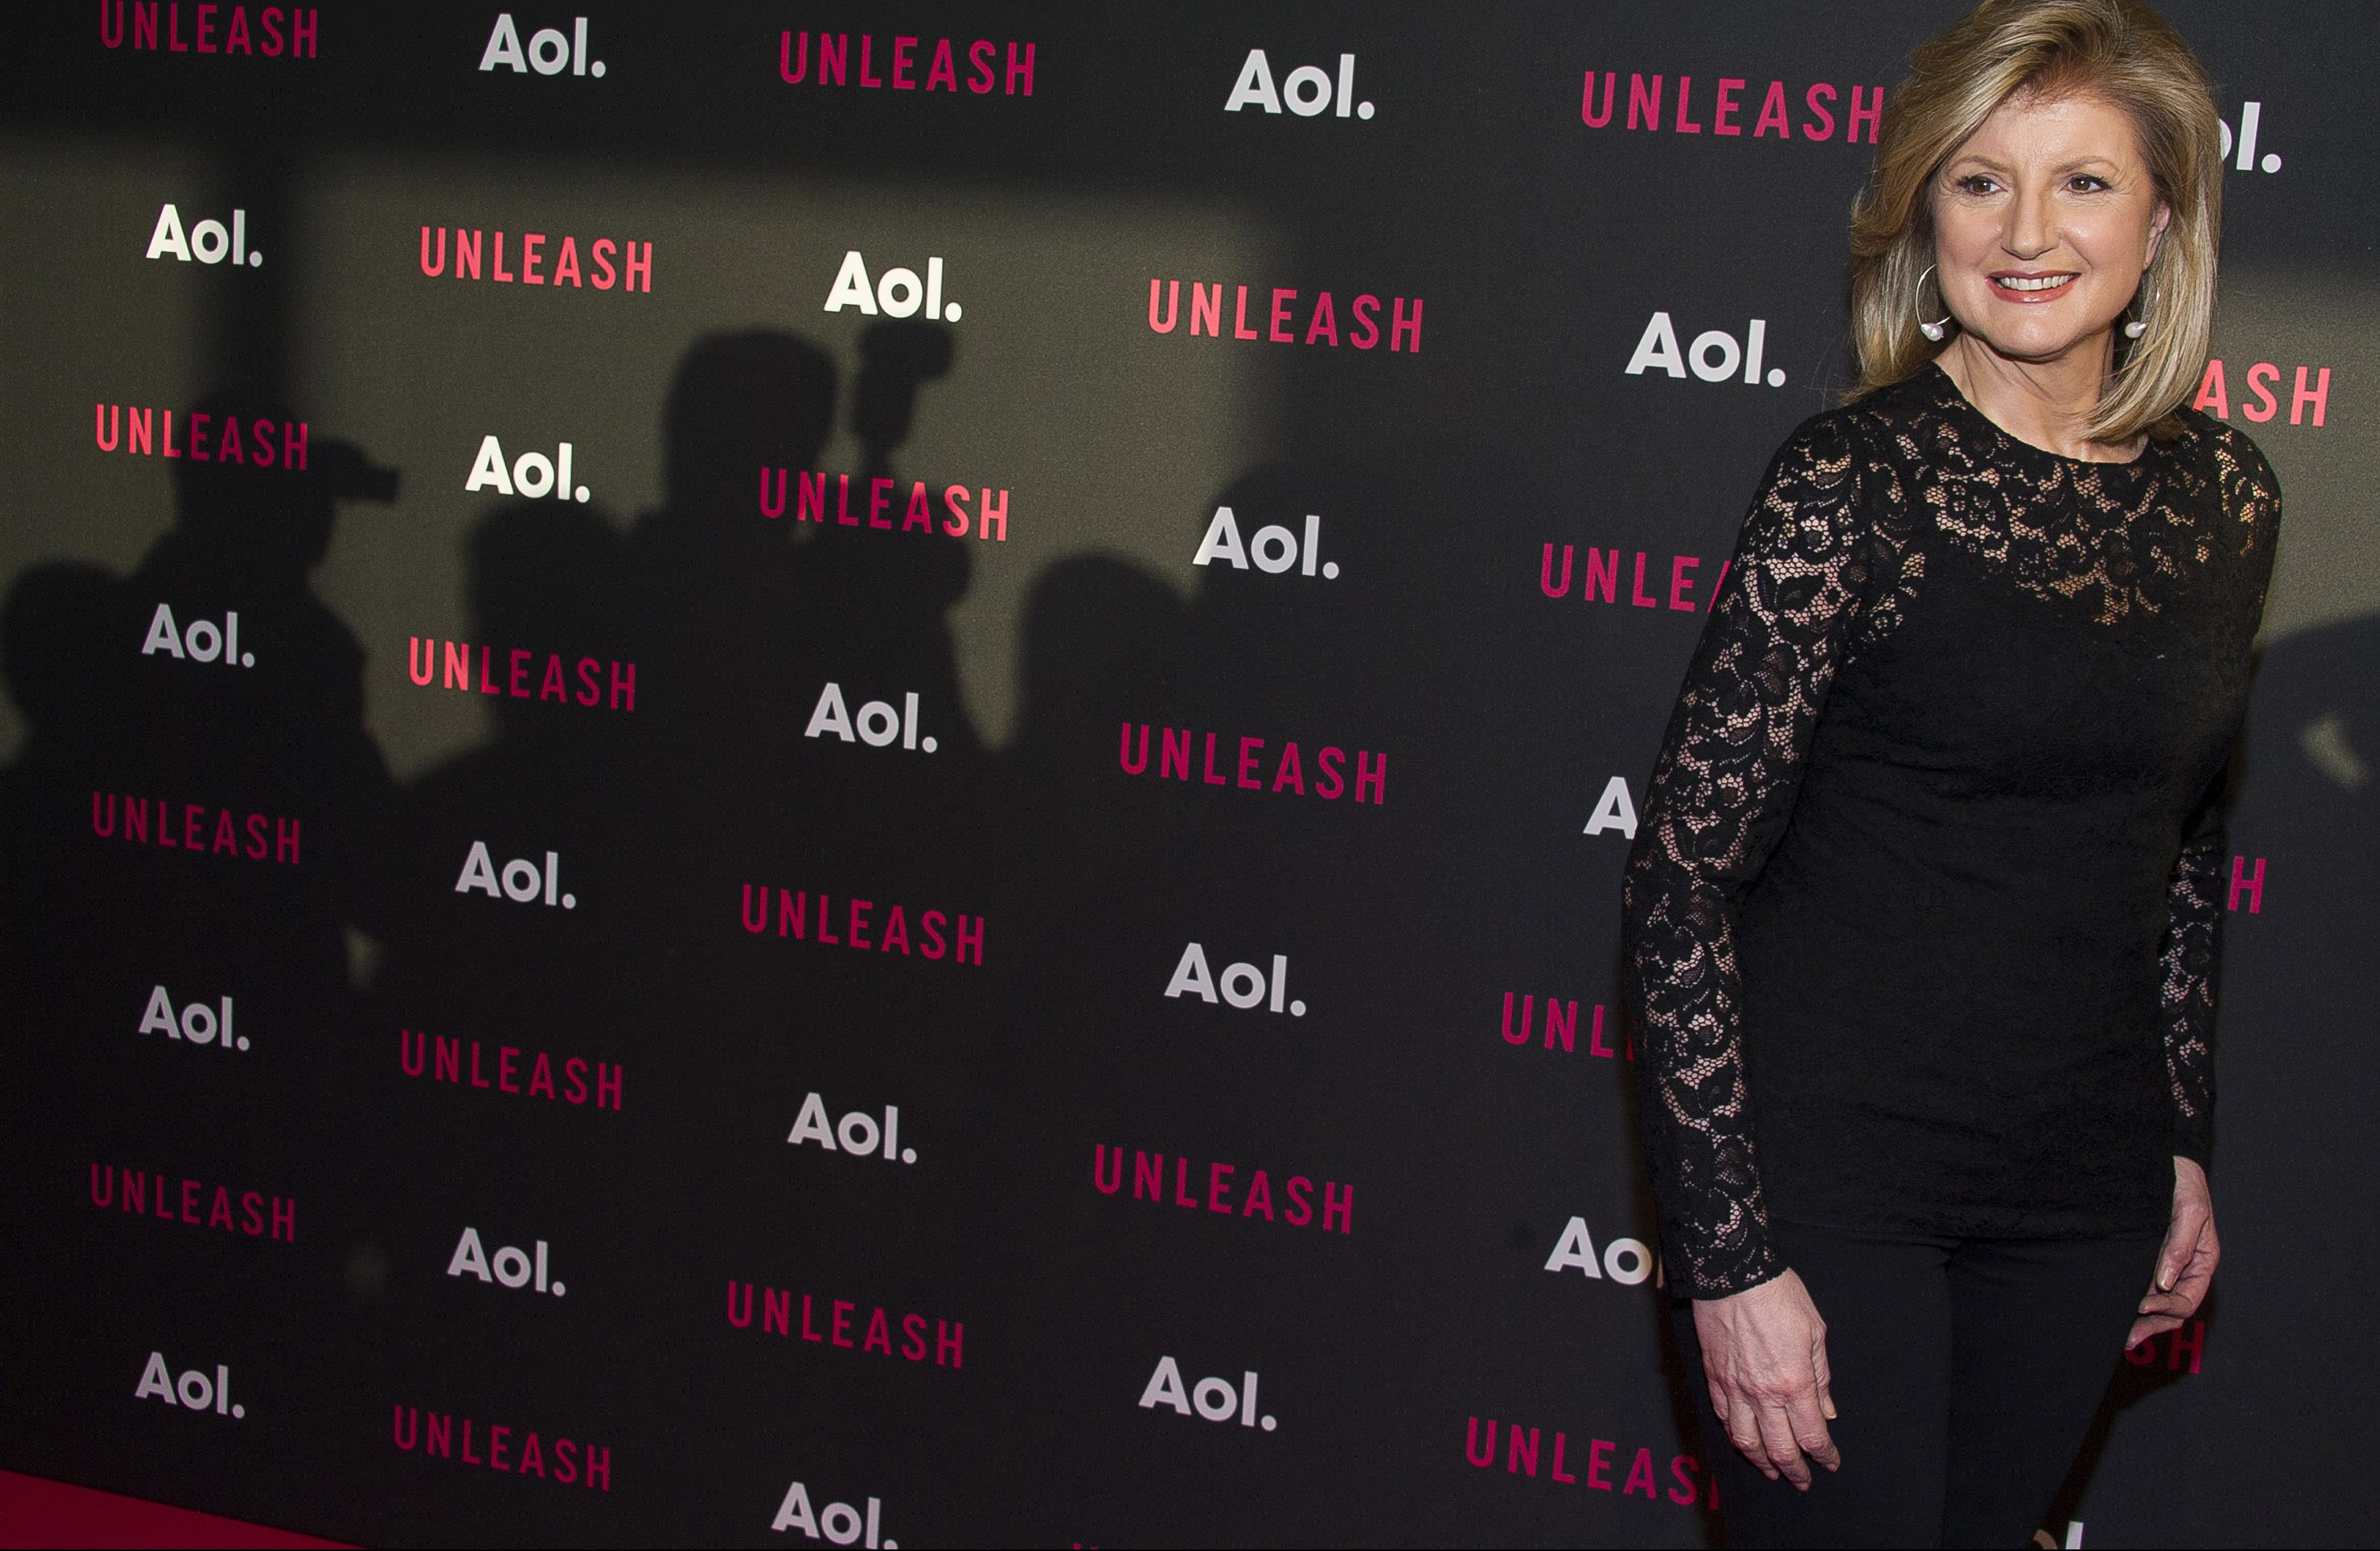 Arianna Huffington attends the AOL NewFront 2015 at 4 World Trade Center on Tuesday, April 28, 2015, in New York. (Photo by Charles Sykes/Invision/AP)